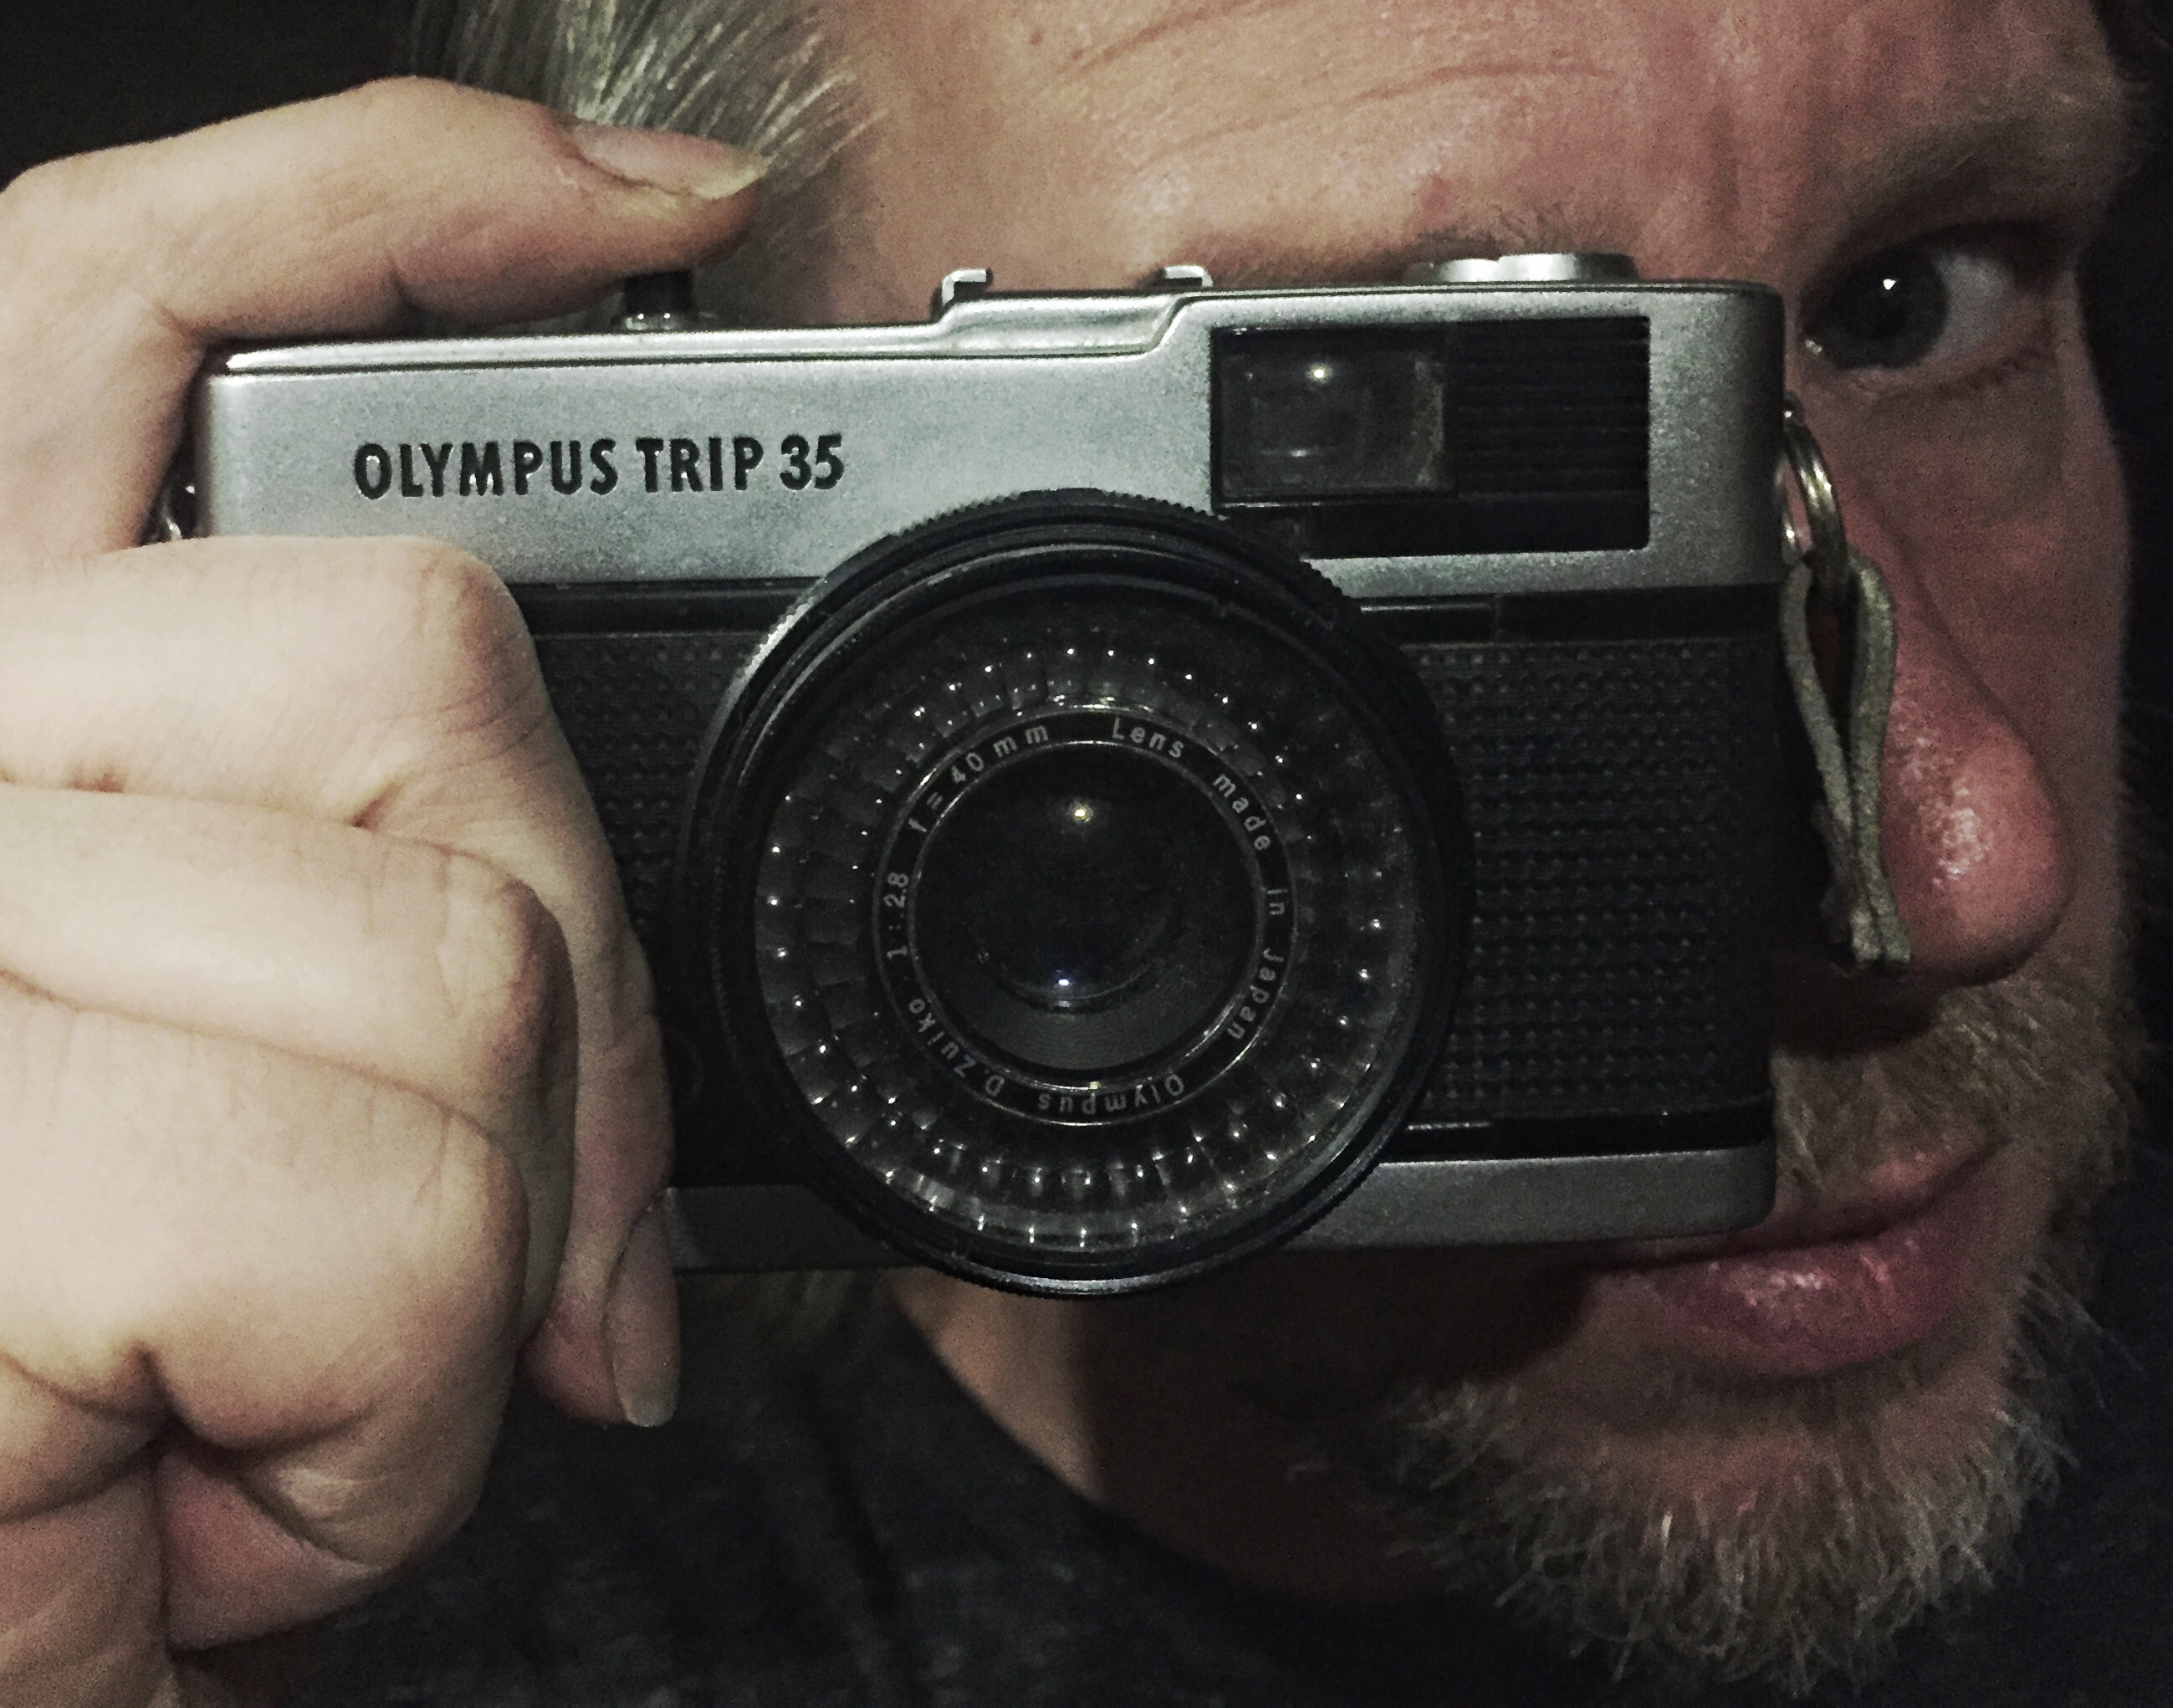 The Olympus Trip, a legend to many, but not to me.